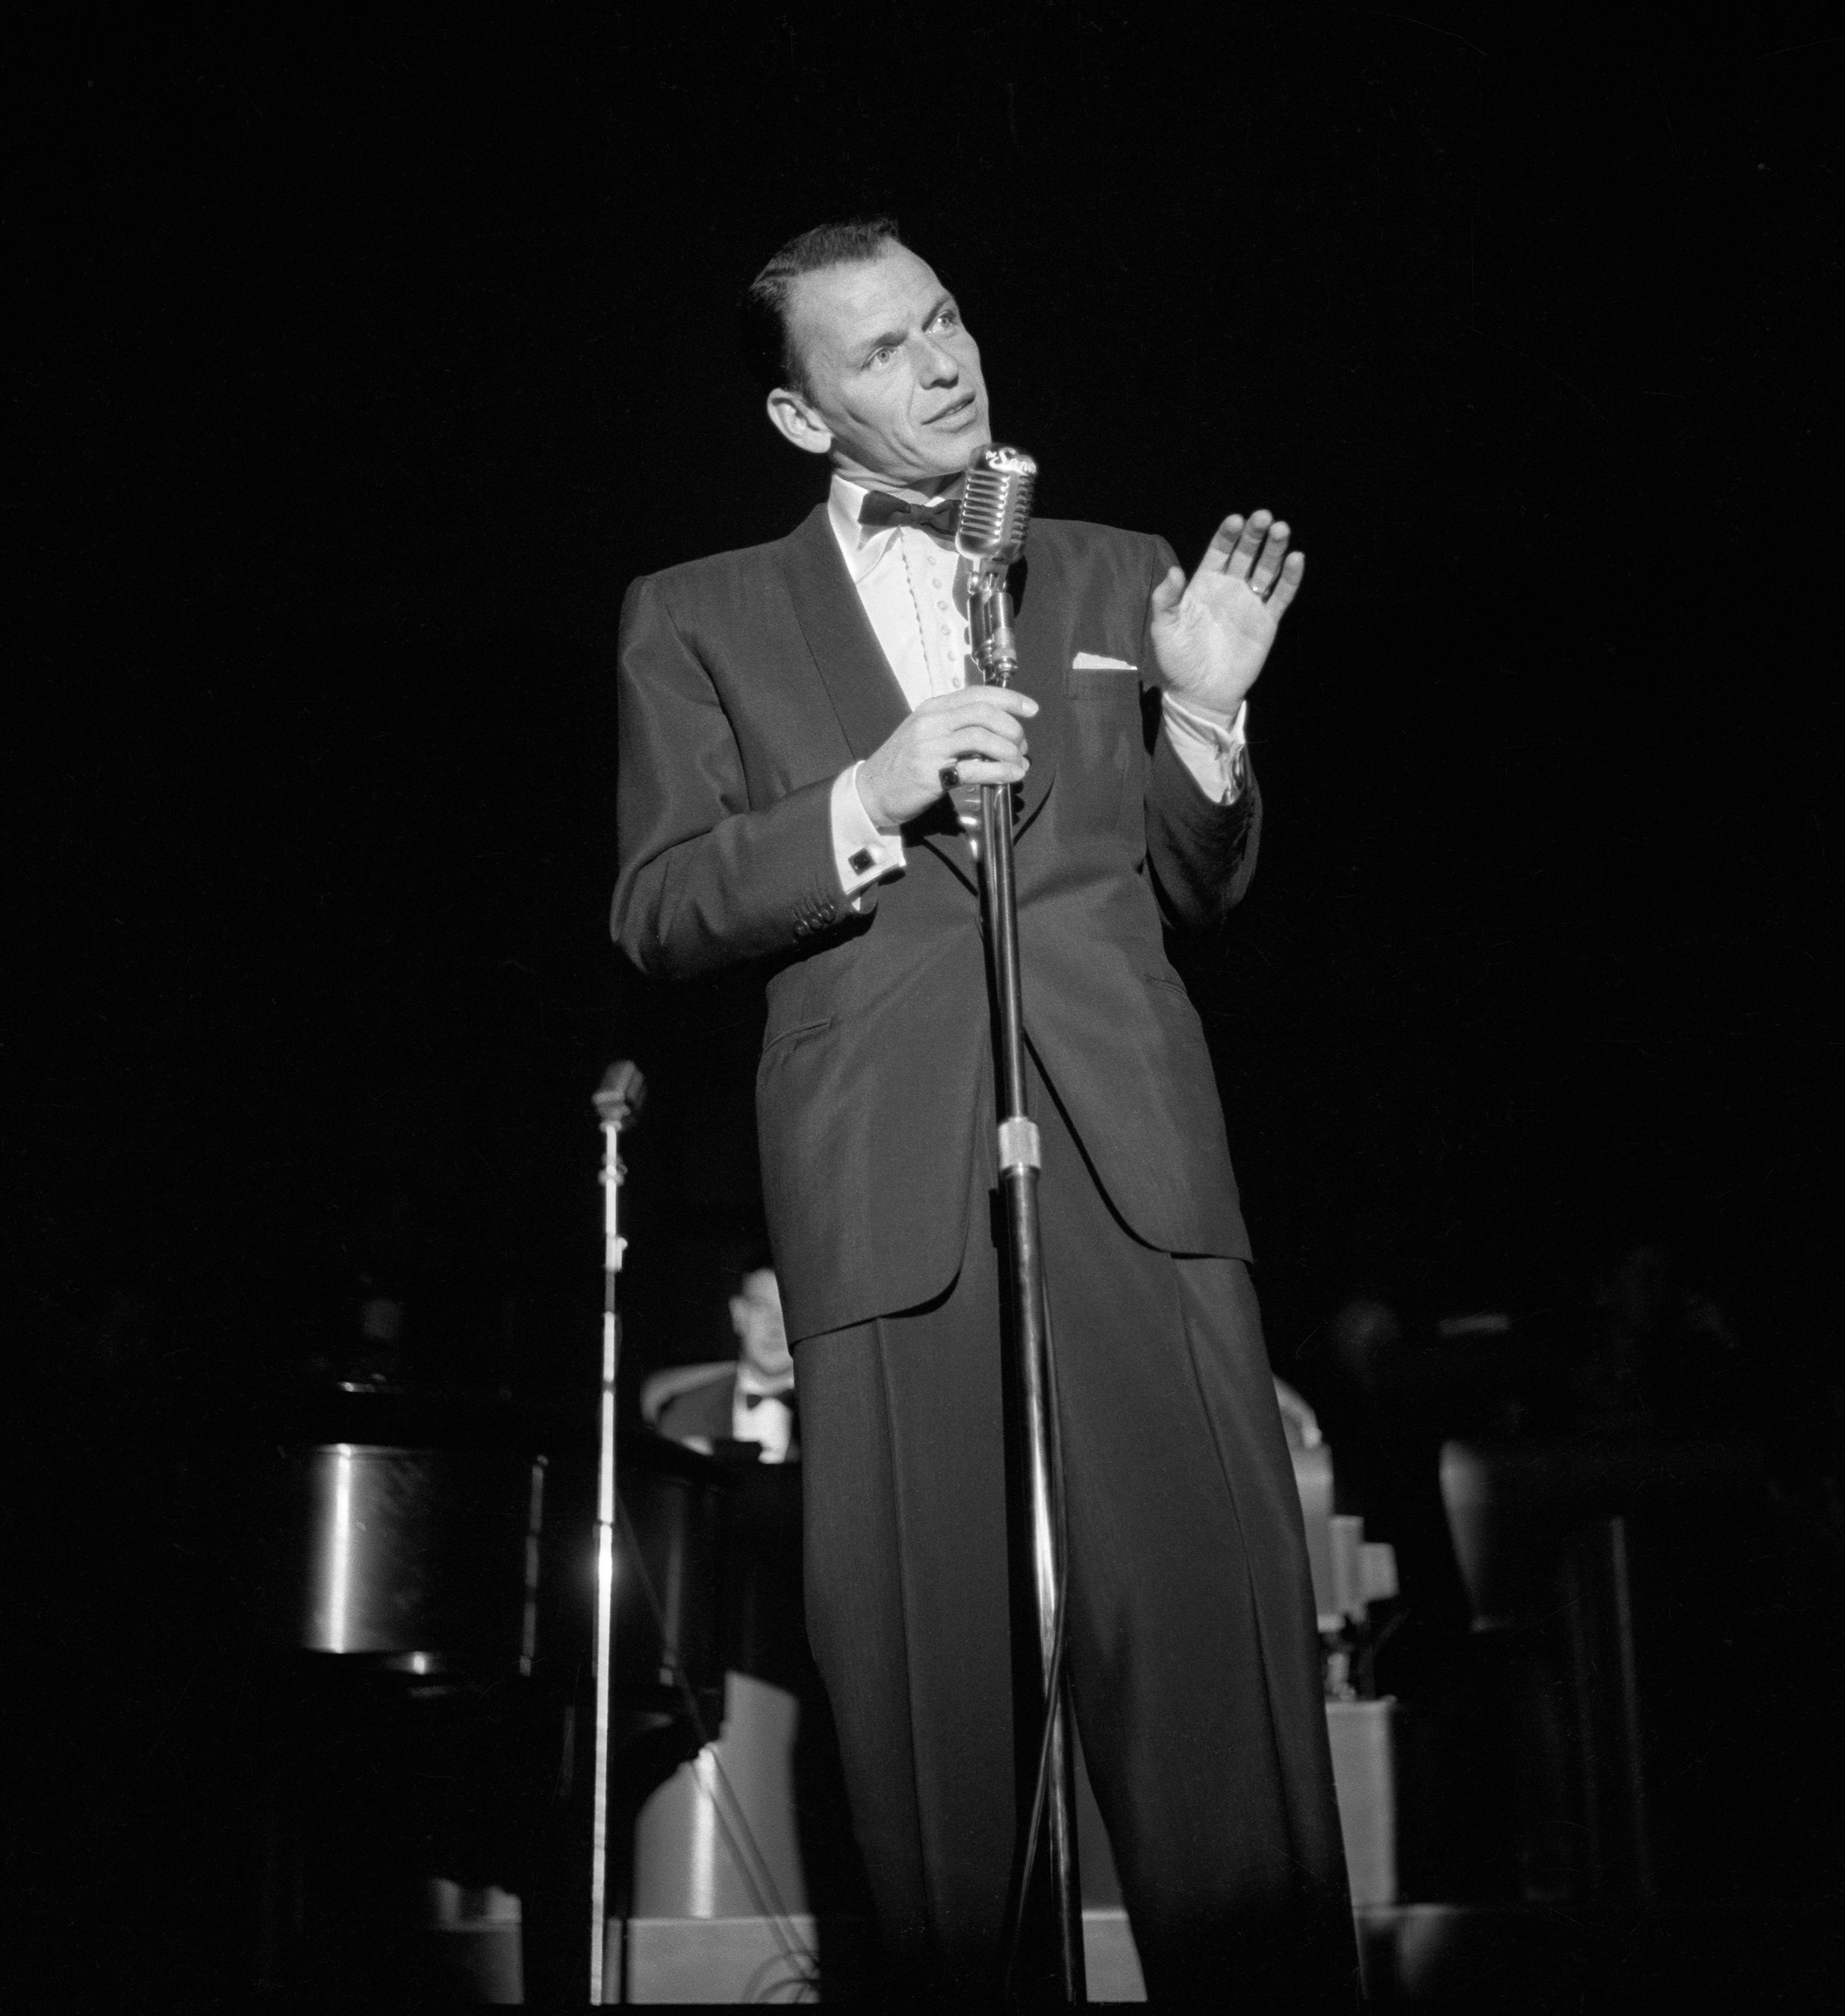 Las Vegas Toasts Strip Legend Frank Sinatra in Honor of 100th Birthday Celebration